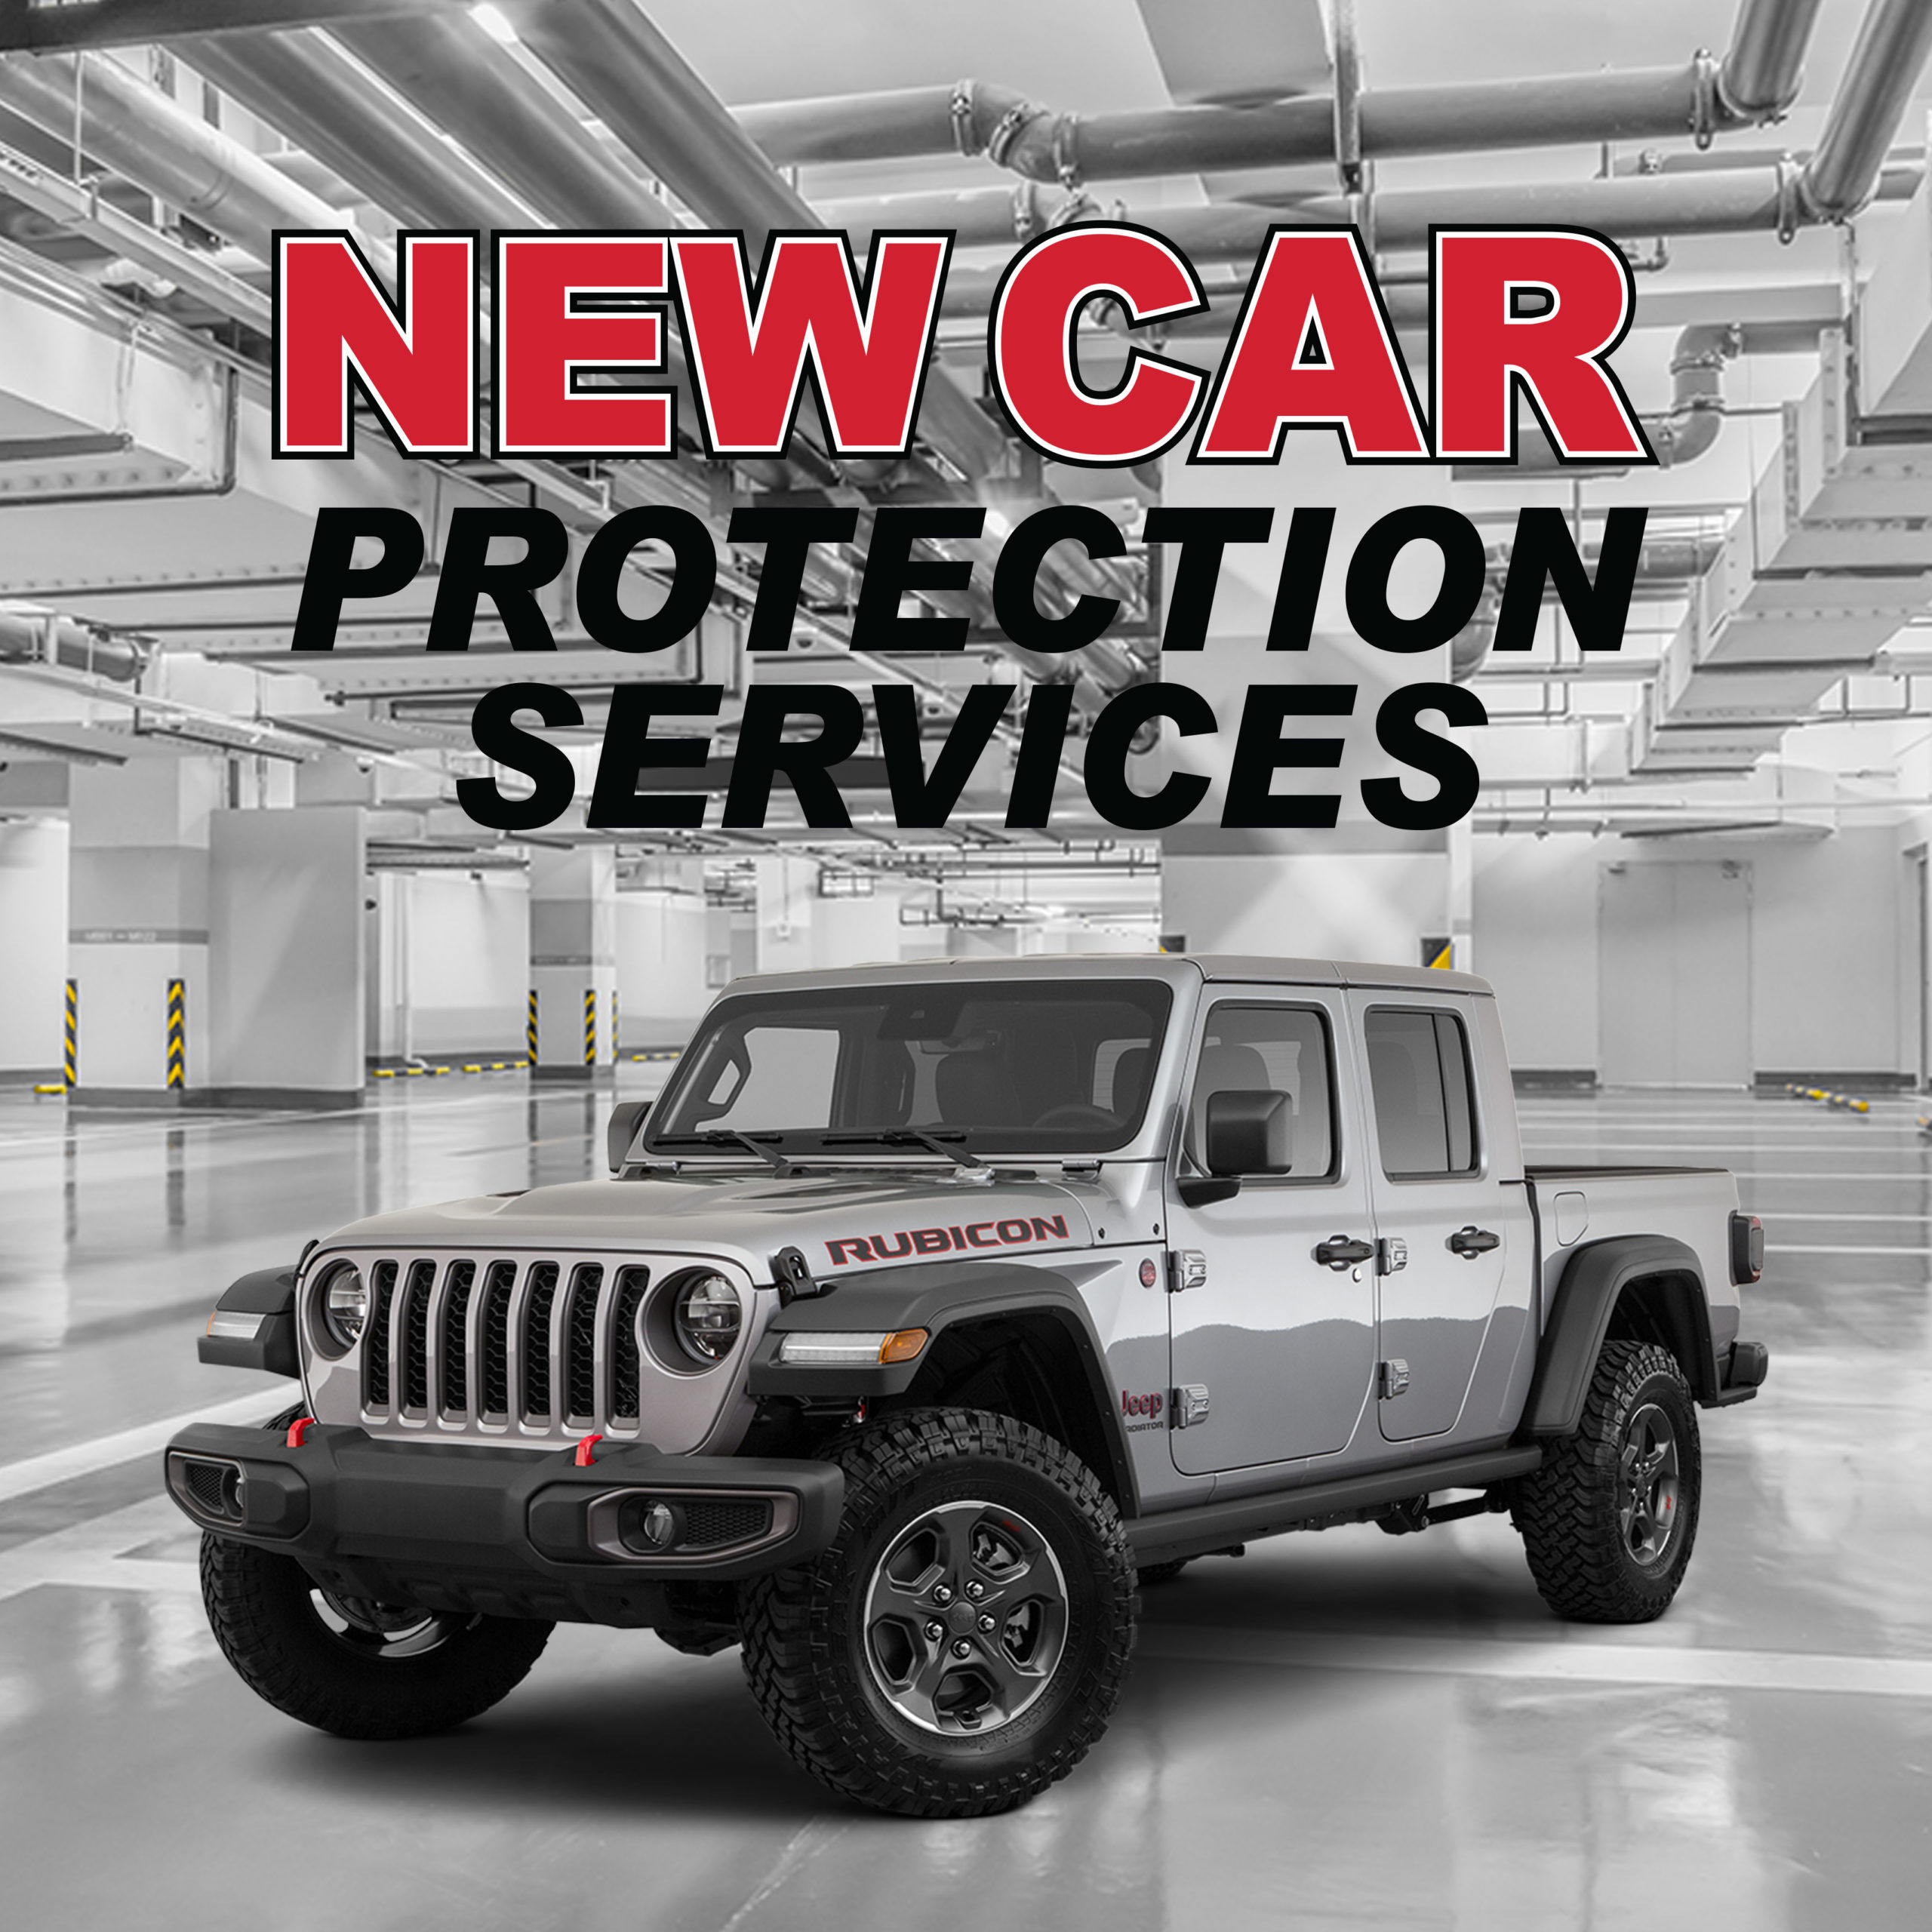 New Car Protection Services